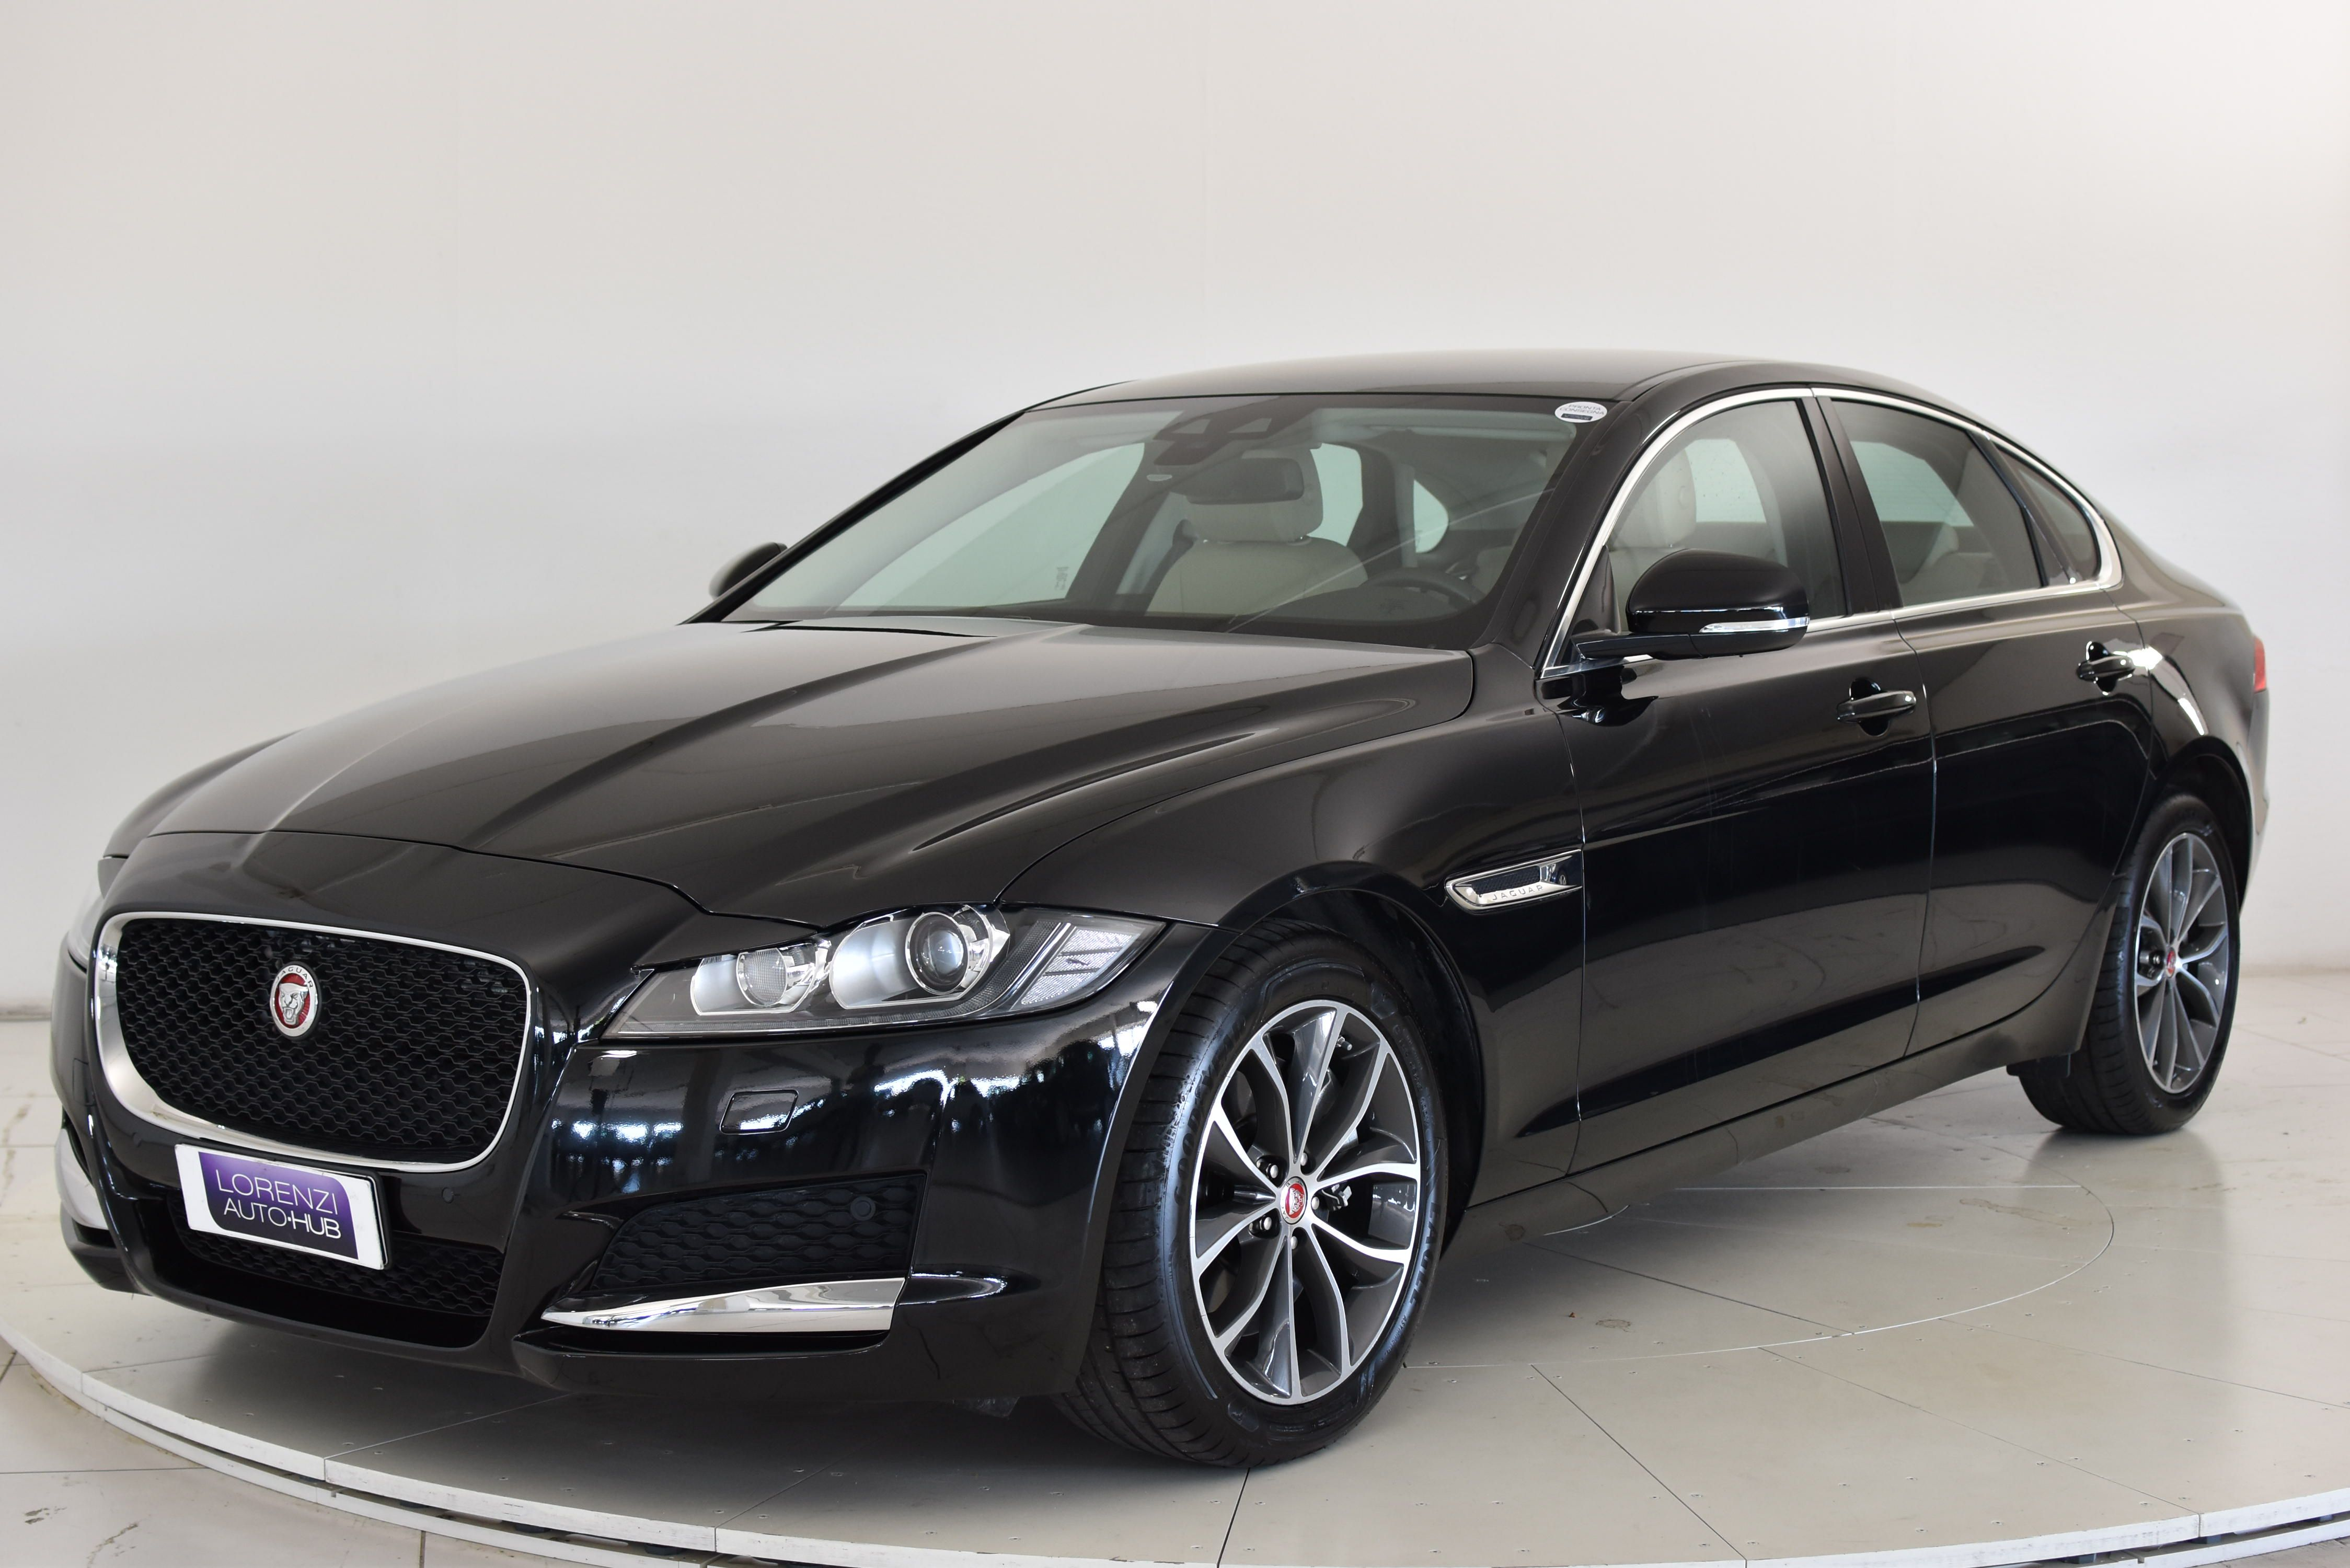 img trade buy western forums used kit xf aero sale private classifieds for fs jaguar forum supercharged oem us